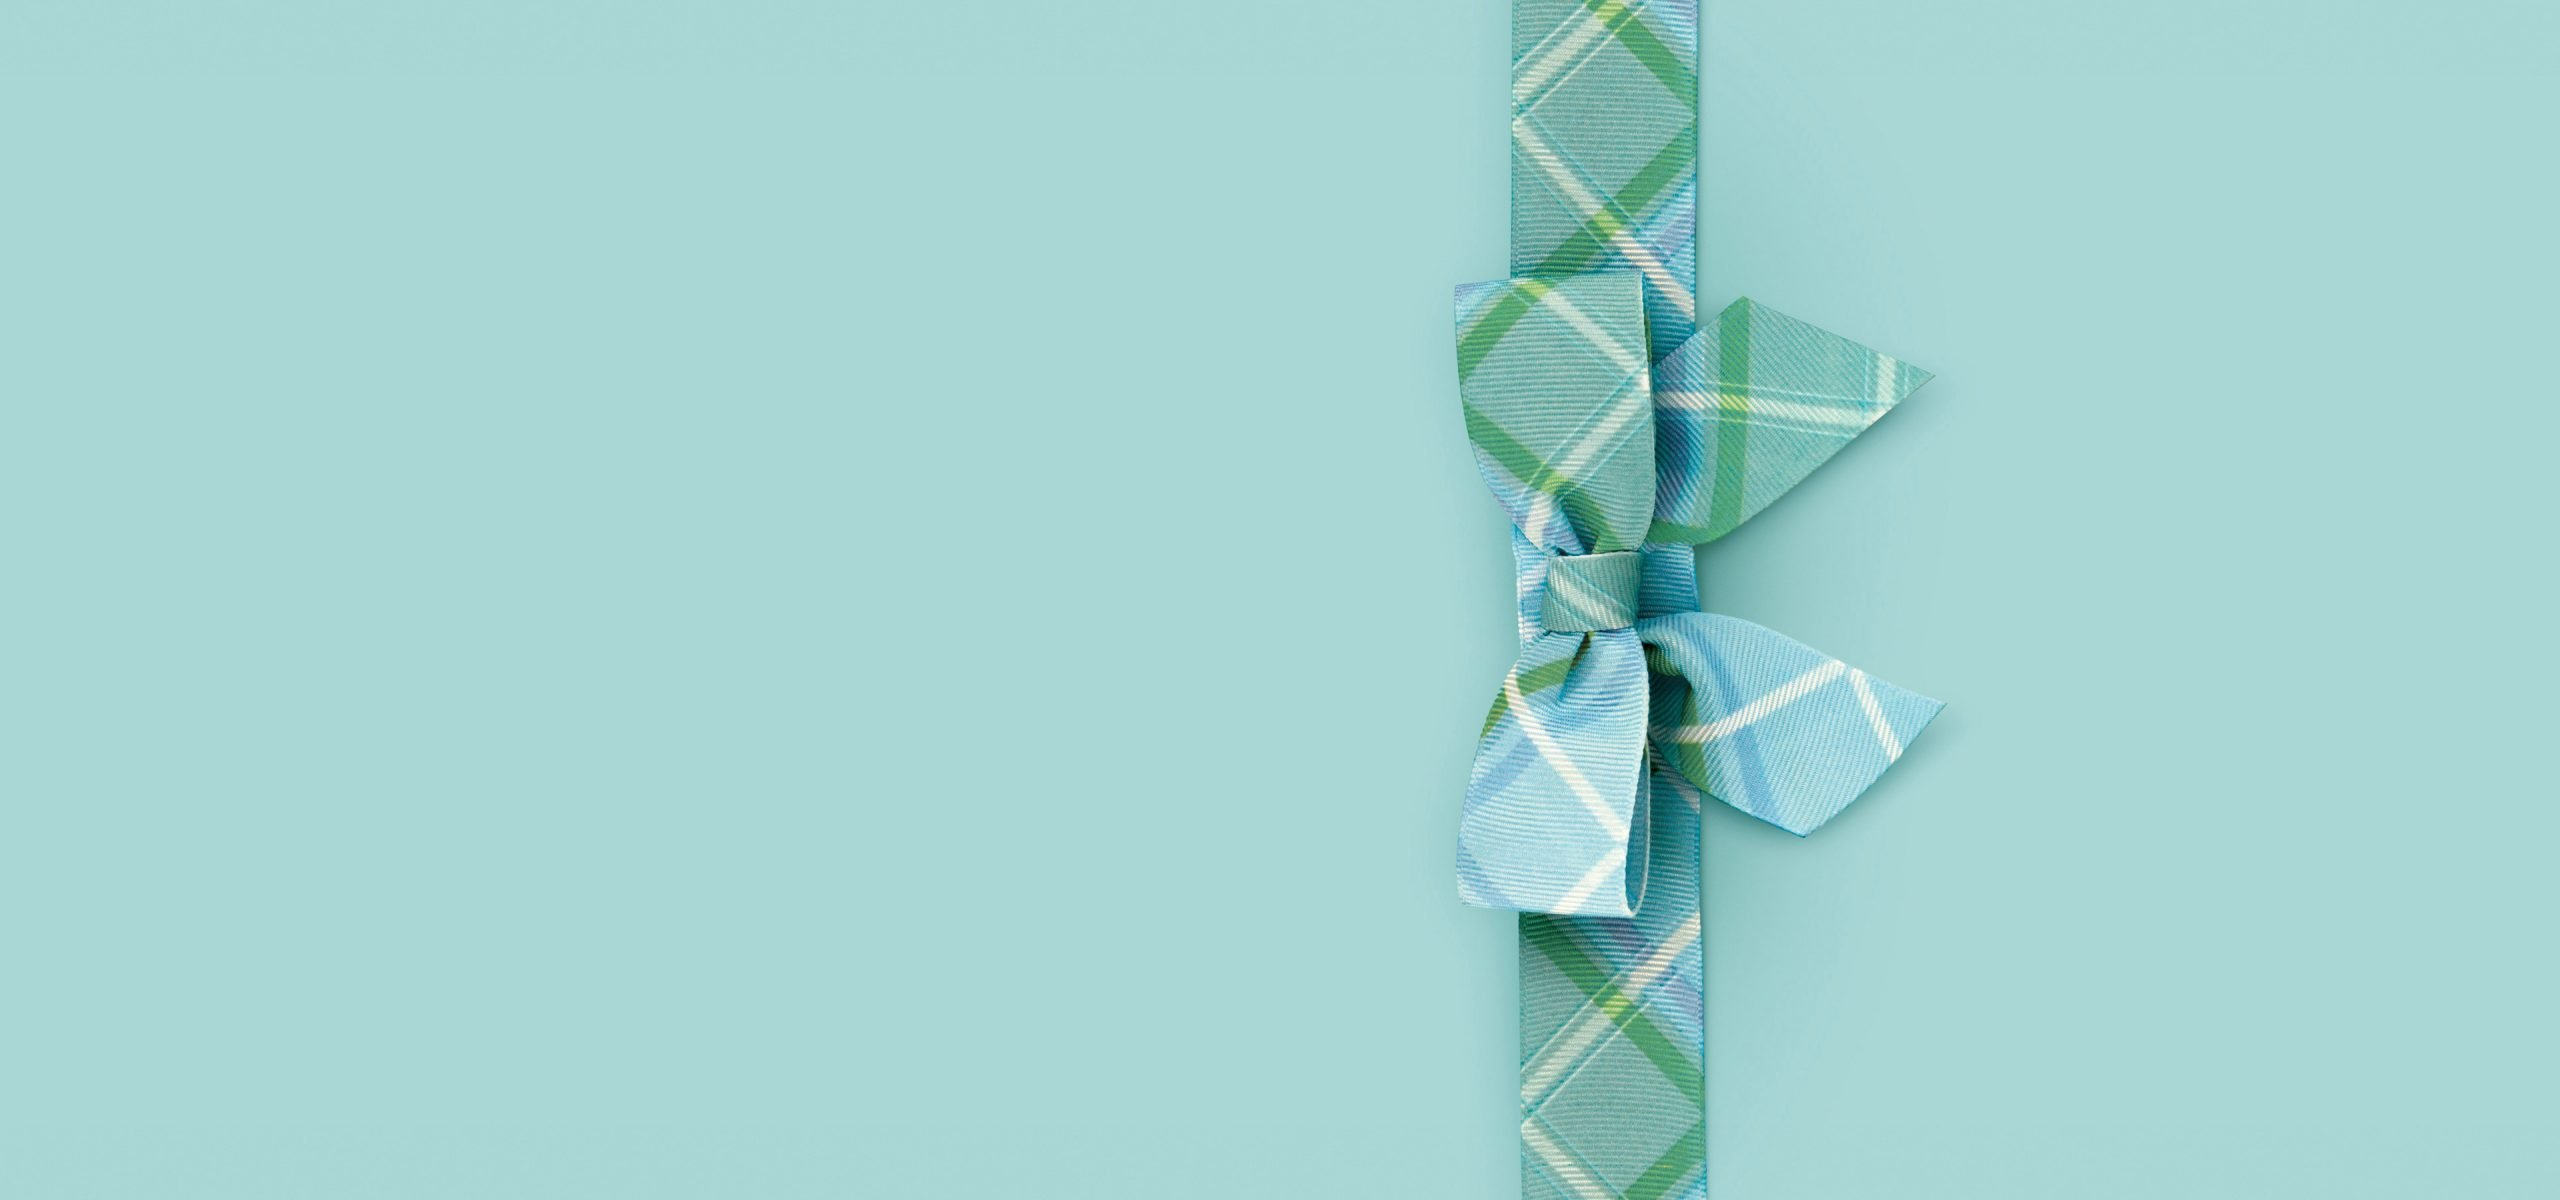 Liz Earle Packaging Design, tartan ribbon on blue background